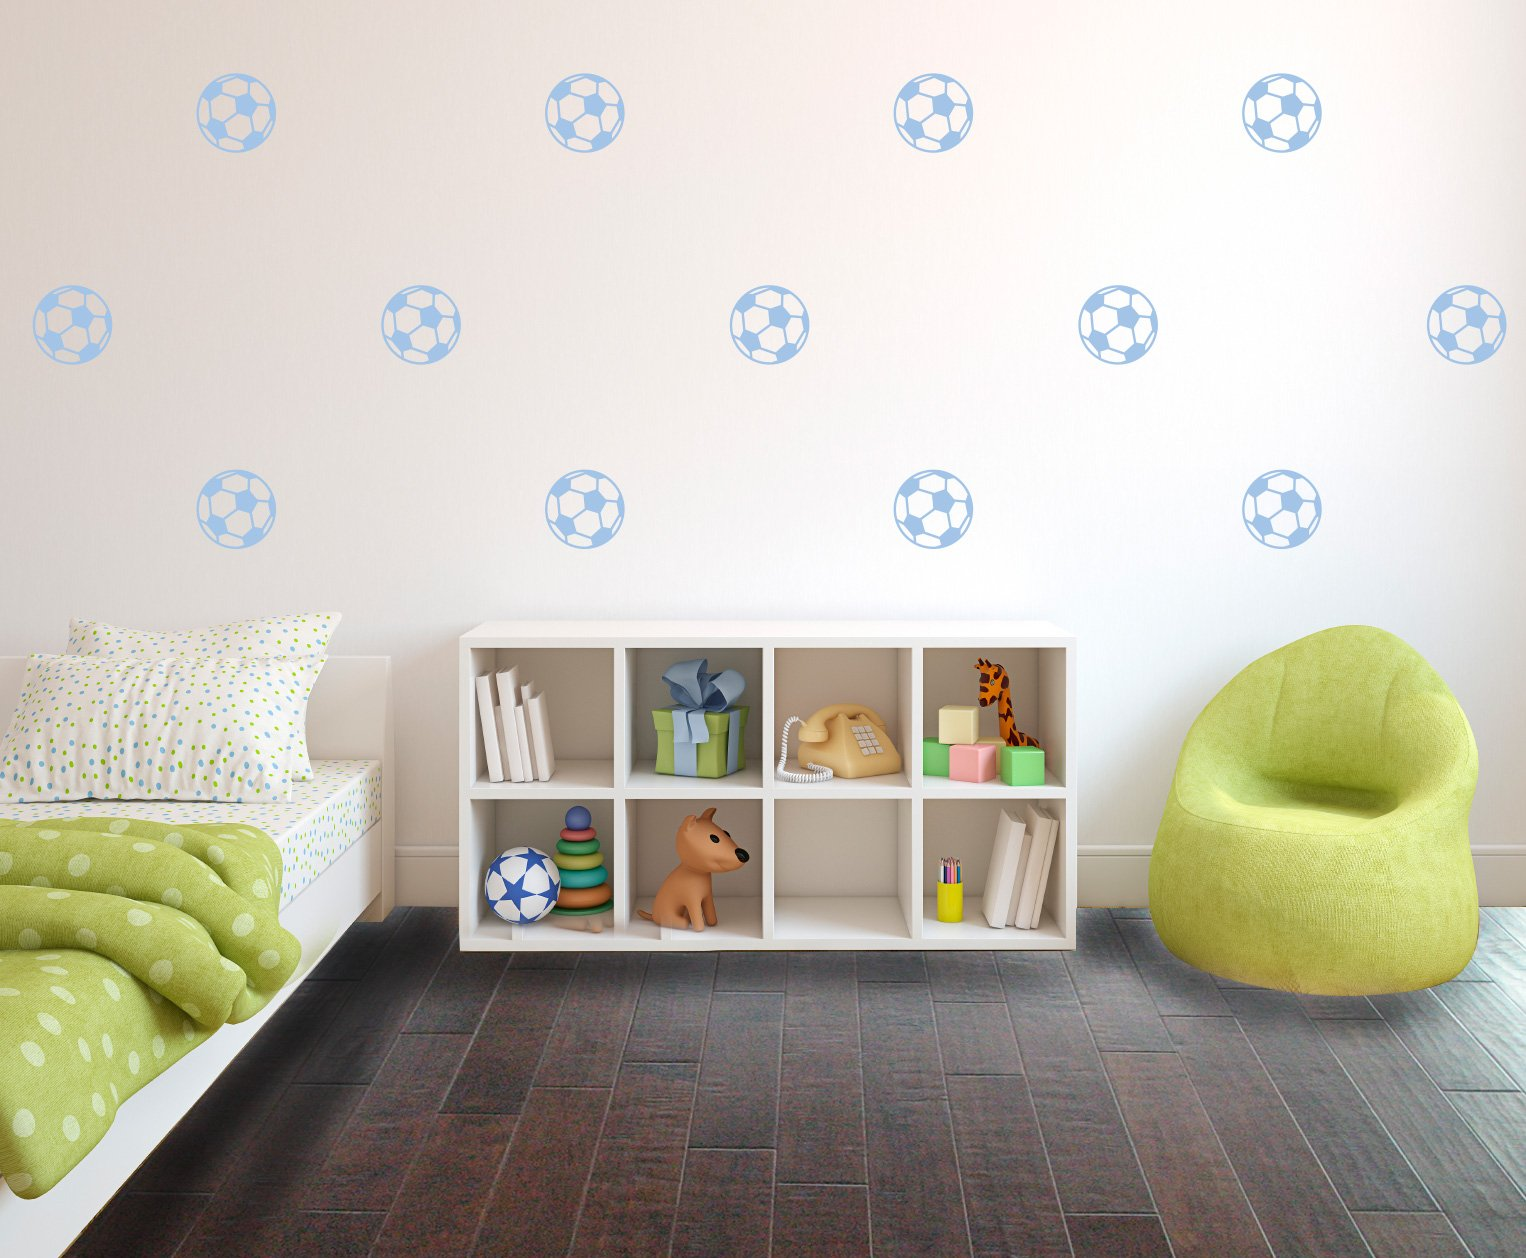 Powder Blue Soccer Ball Pattern - Set of 10 - Sports Vinyl Wall Art Decal for Homes, Offices, Kids Rooms, Nurseries, Schools, High Schools, Colleges, Universities